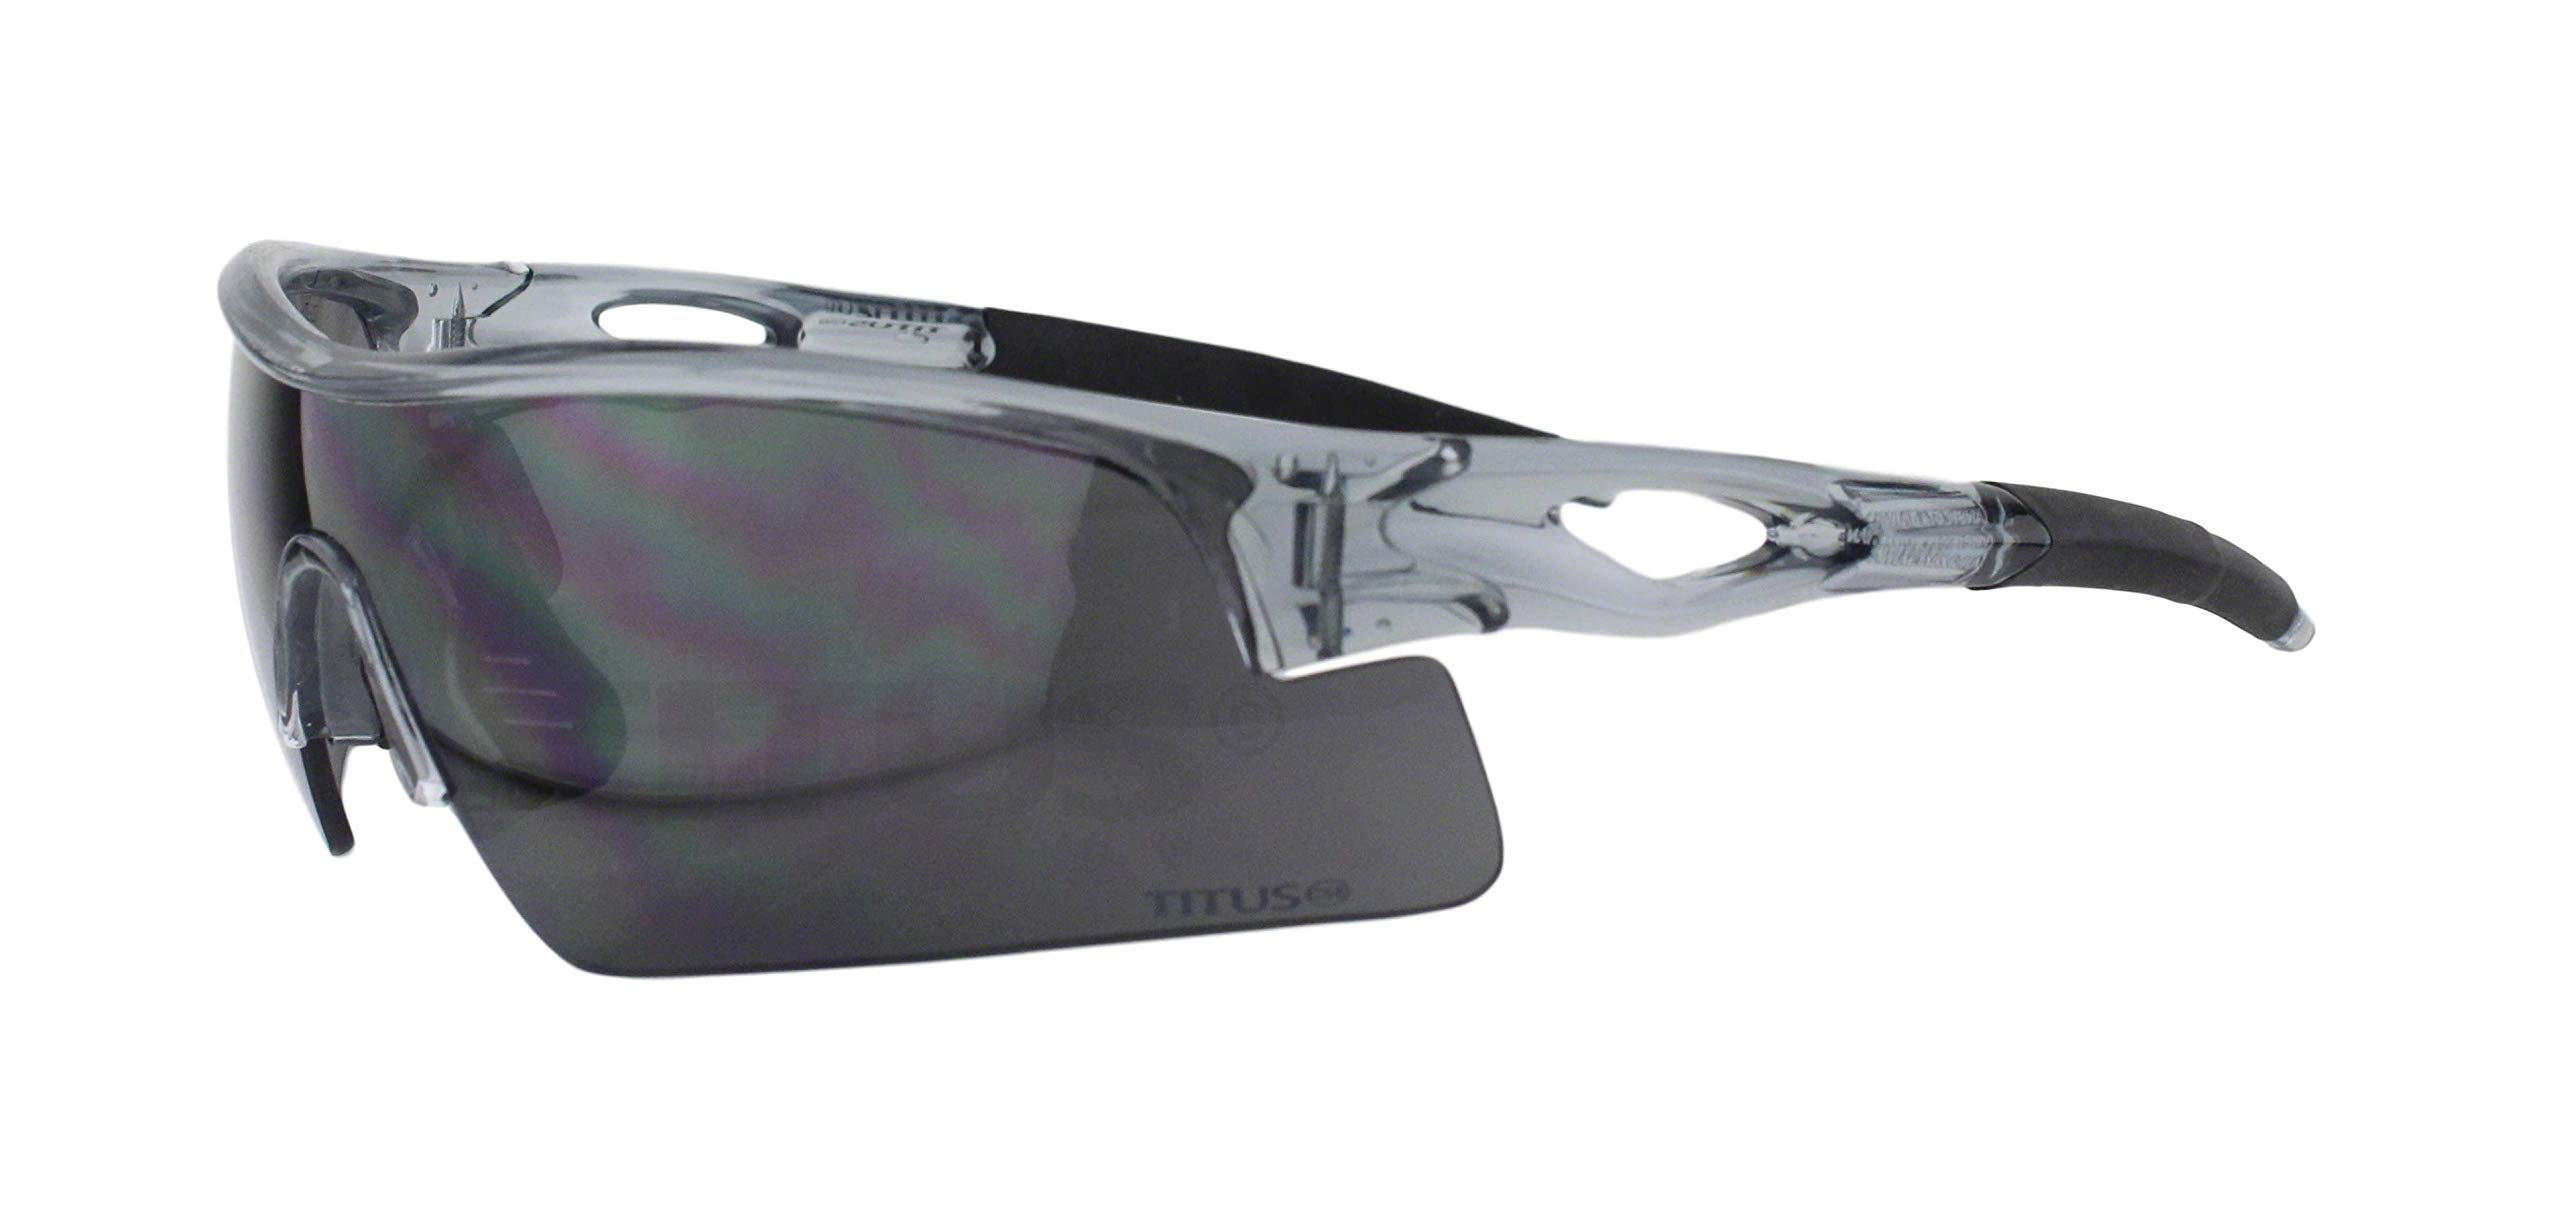 Titus All-Sports Frame Safety Glasses (with Pouch, Grey Frame - Smoke Lens) by Titus